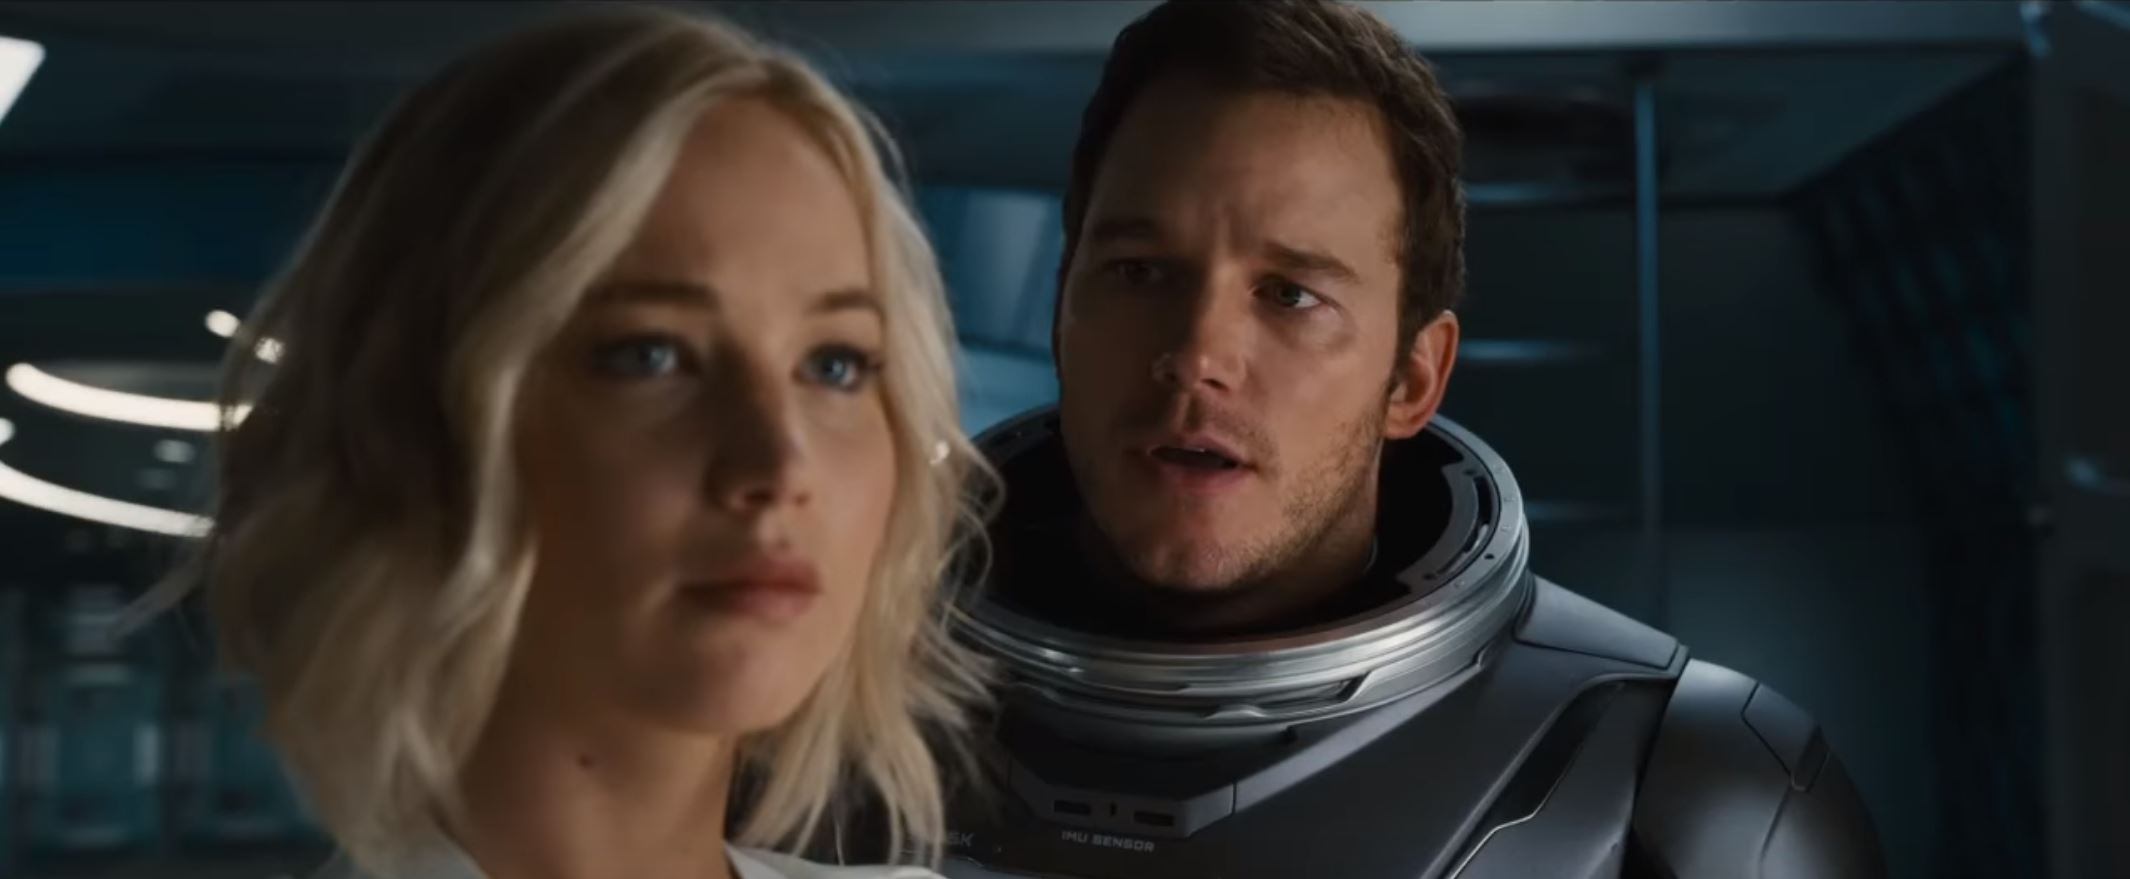 Watch The New Trailer PASSENGERS with Jennifer Lawrence and Chris Pratt